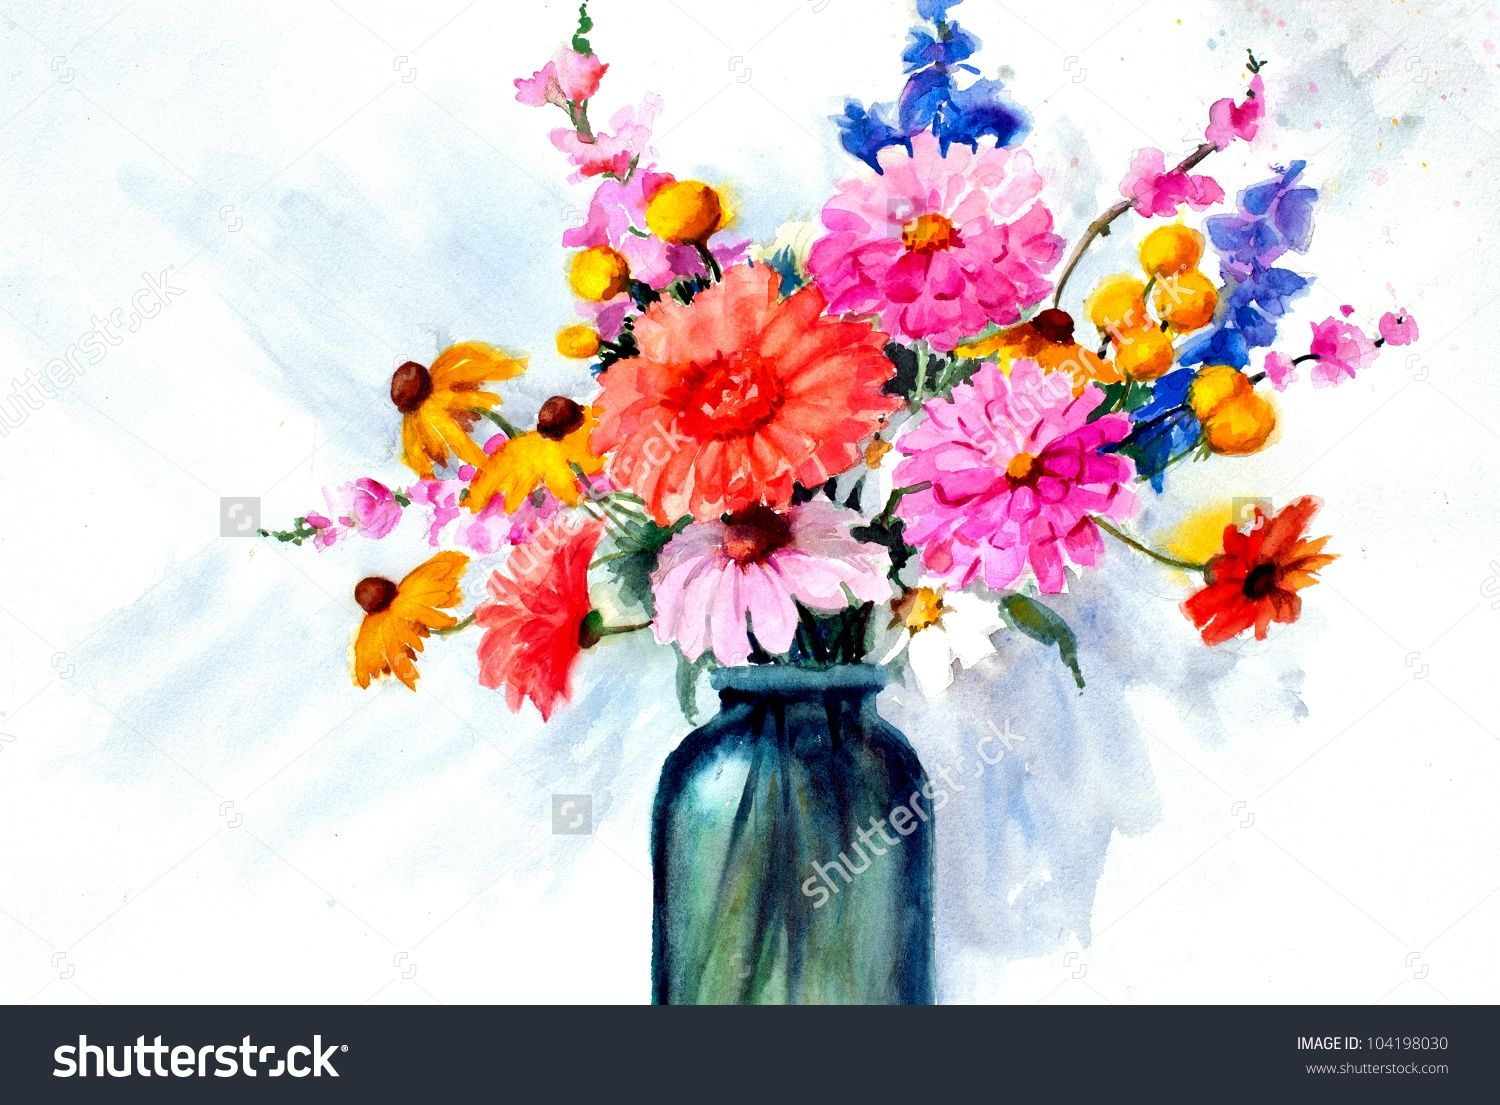 Beautiful Flower Vase Paintings Watercolor Art Diy Painting